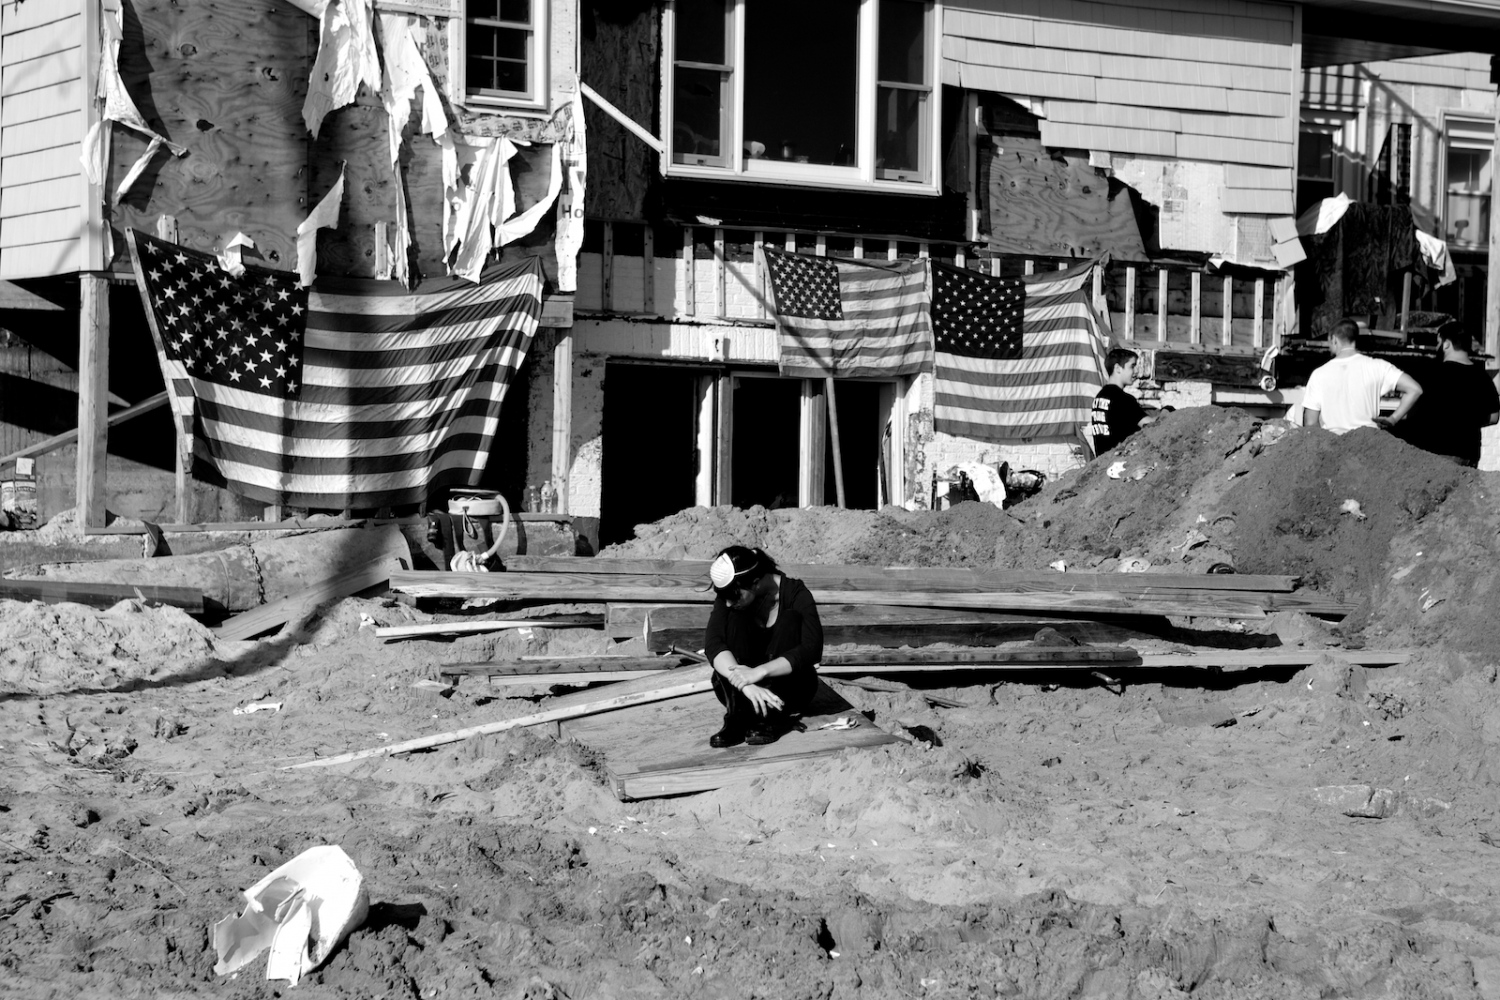 A woman sits in front of a home destroyed by Hurricane Sandy in Breezy Point, Queens, N.Y. on Nov. 11, 2012.